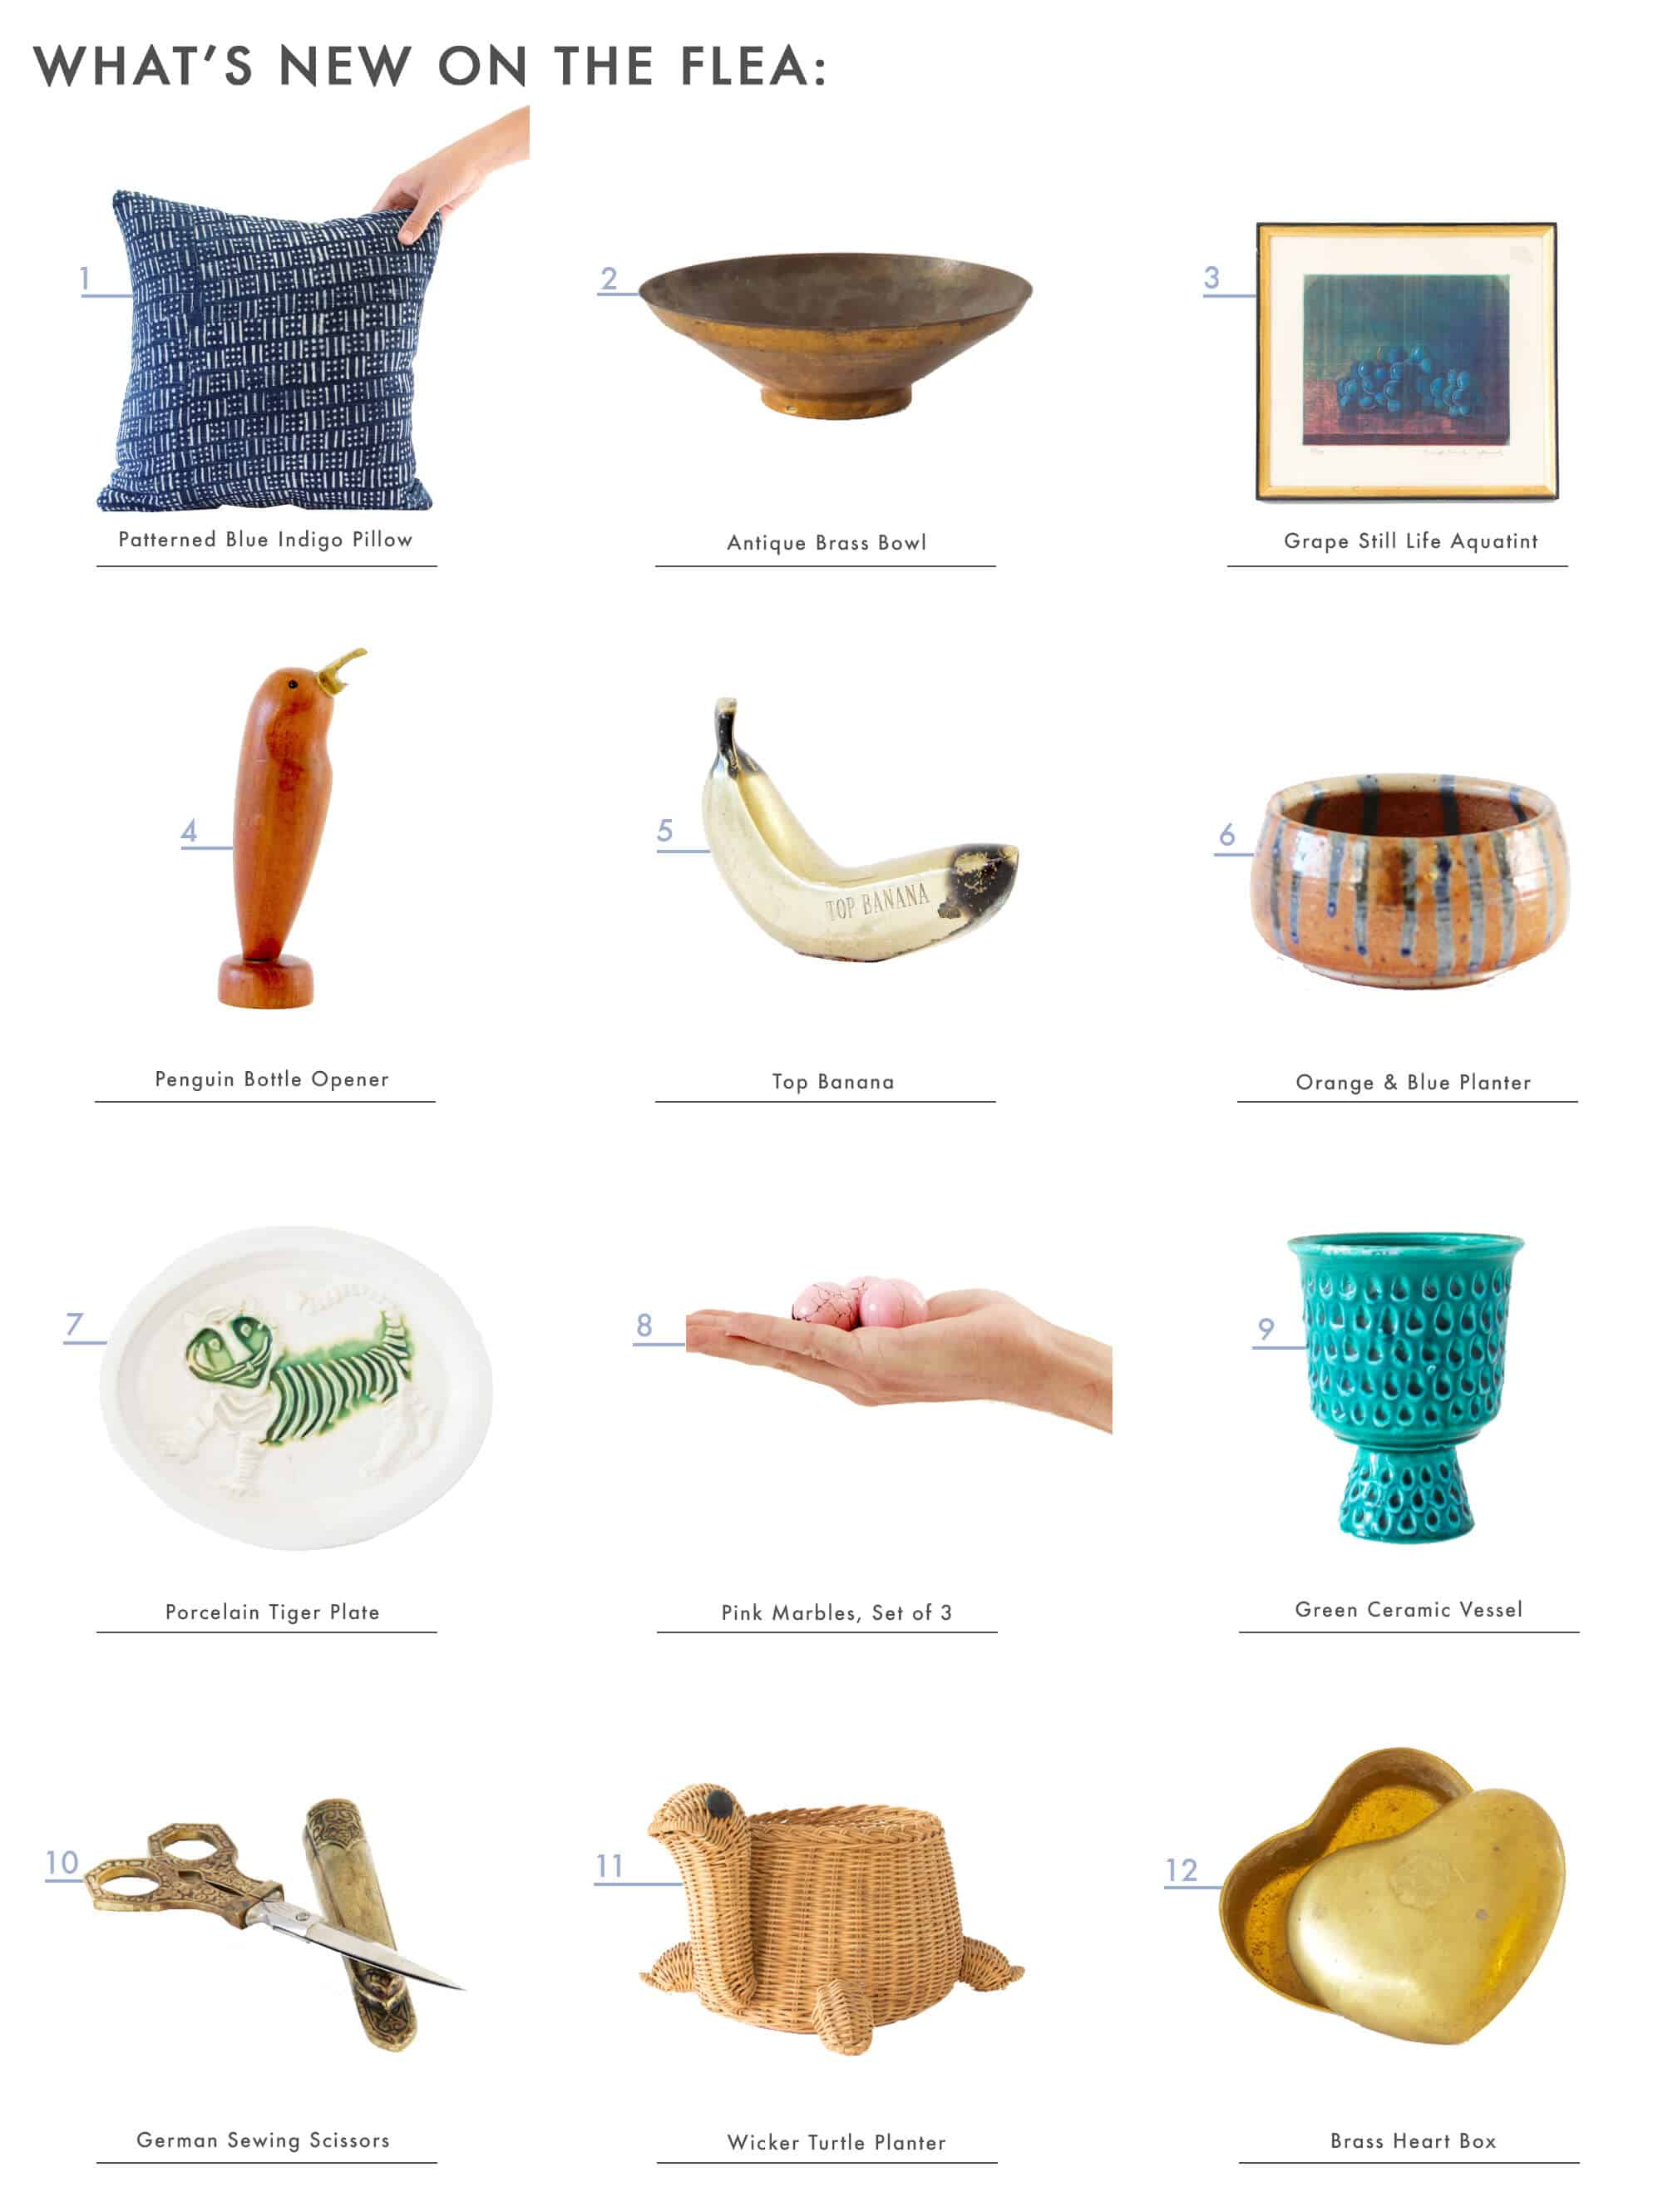 whats-new-on-the-flea_product-release-roundup_emily-henderson_vintage_thrifted_the-flea_2